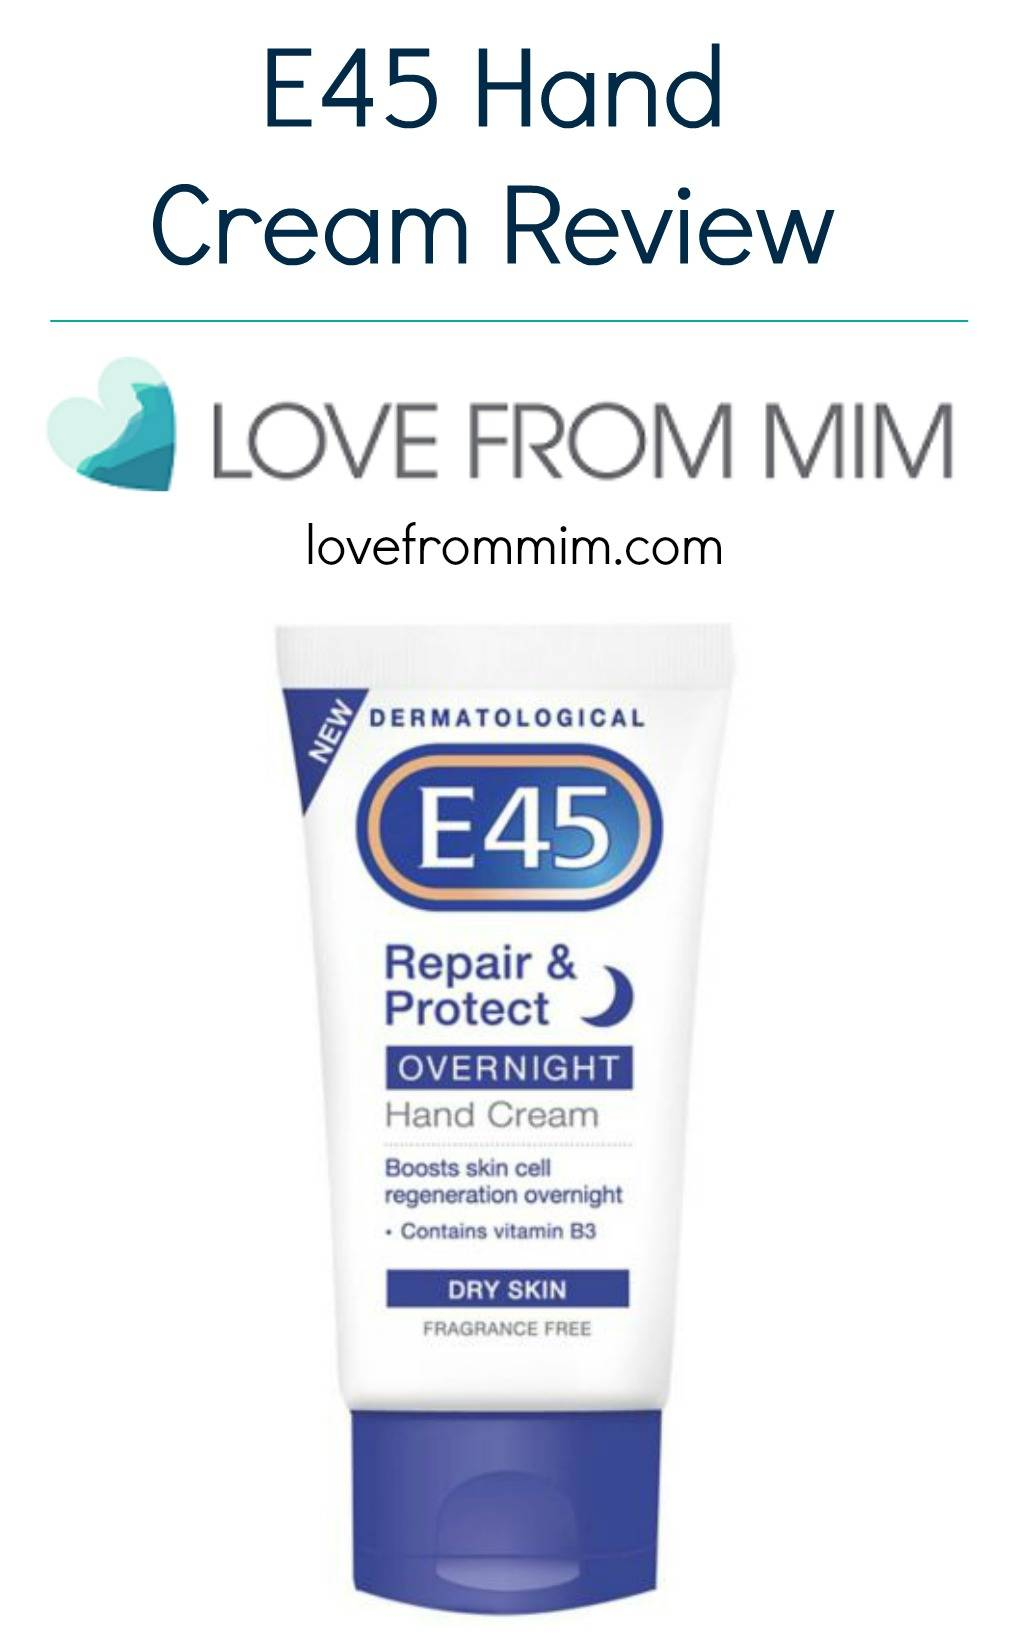 E45 Hand Cream Review - lovefrommim.com E45 Hand Creams E45 Cream Dry Skin Hand Cream